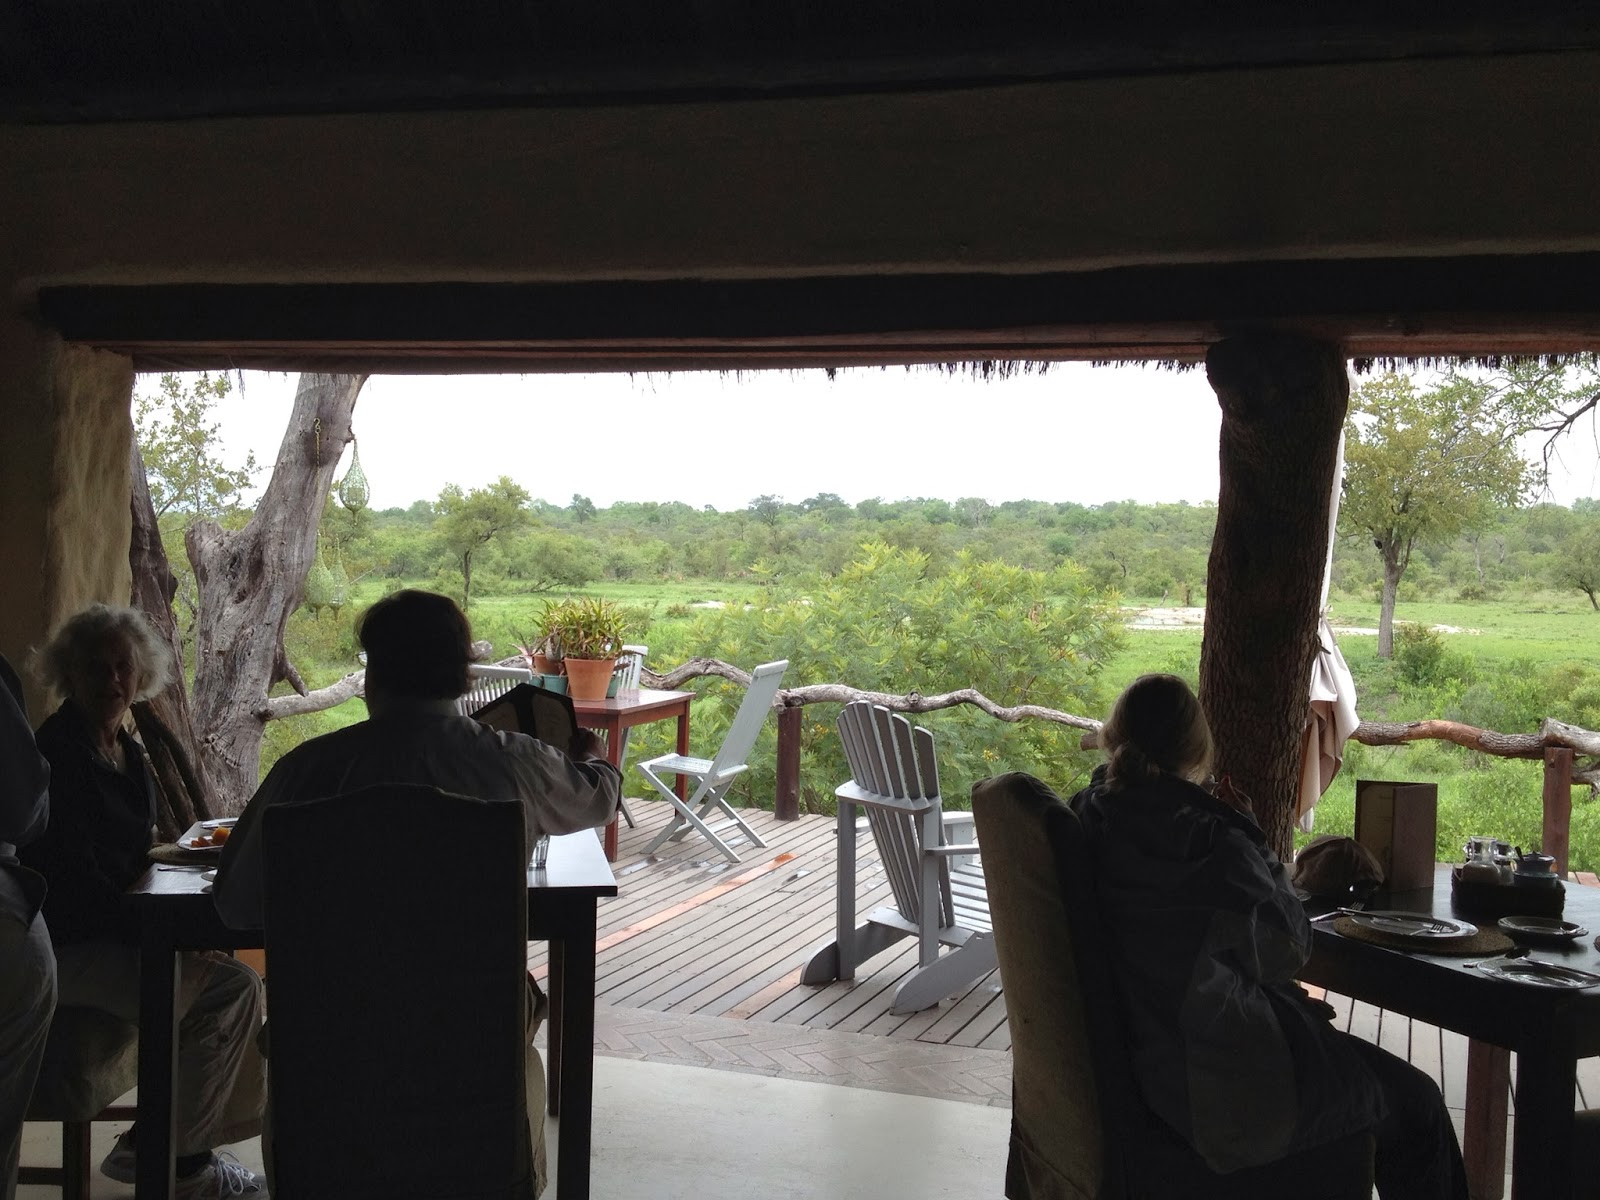 Sabi Sands - We have a view of the watering hole from the dining area